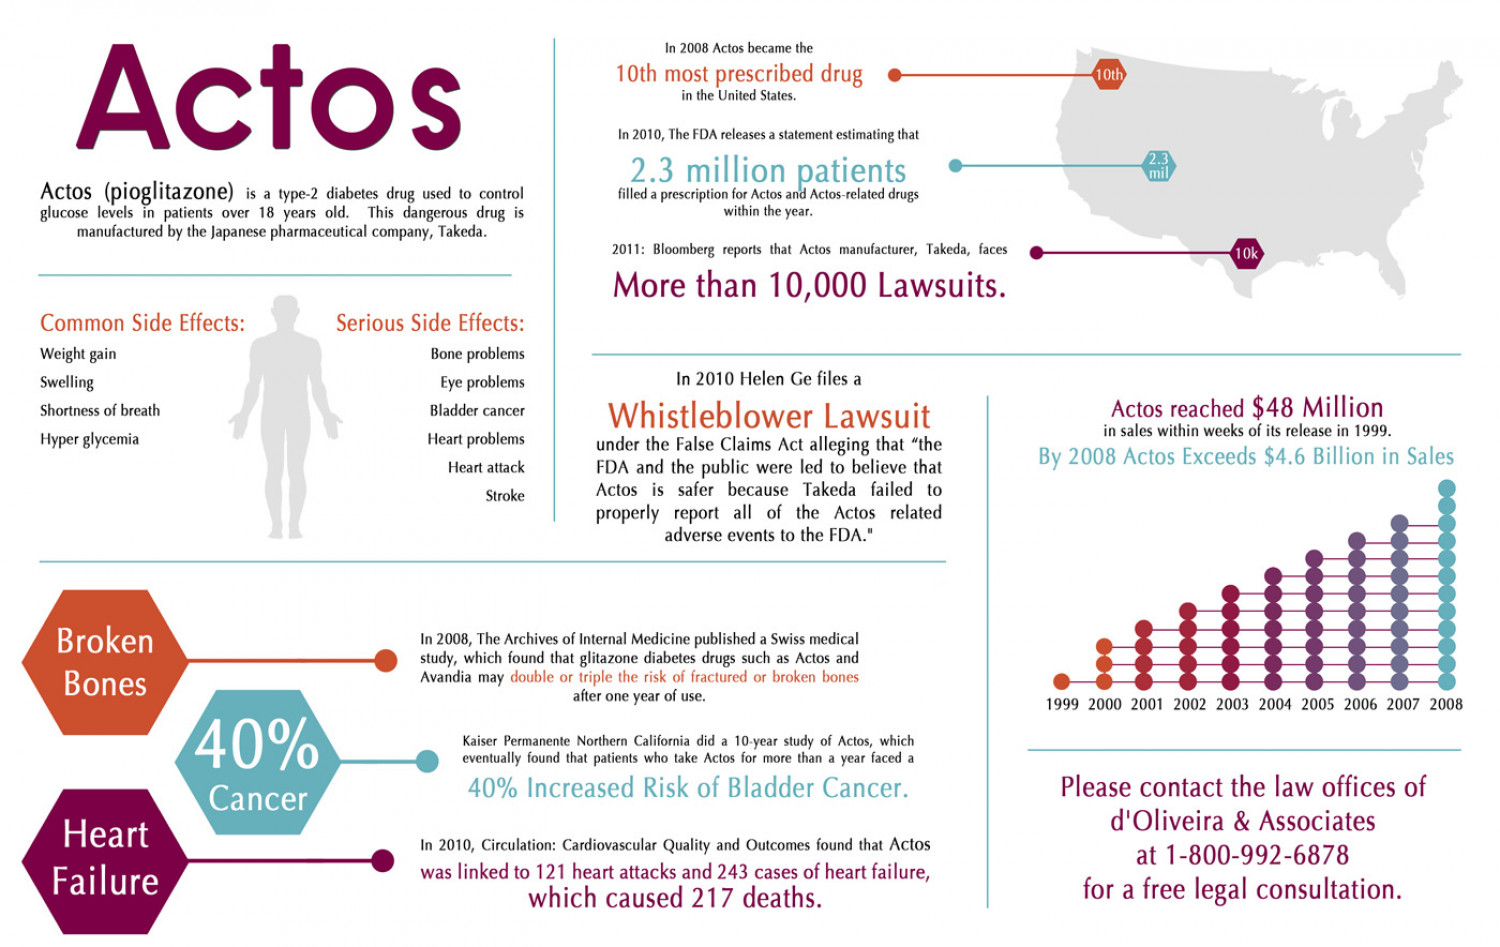 Actos Side Effects Infographic